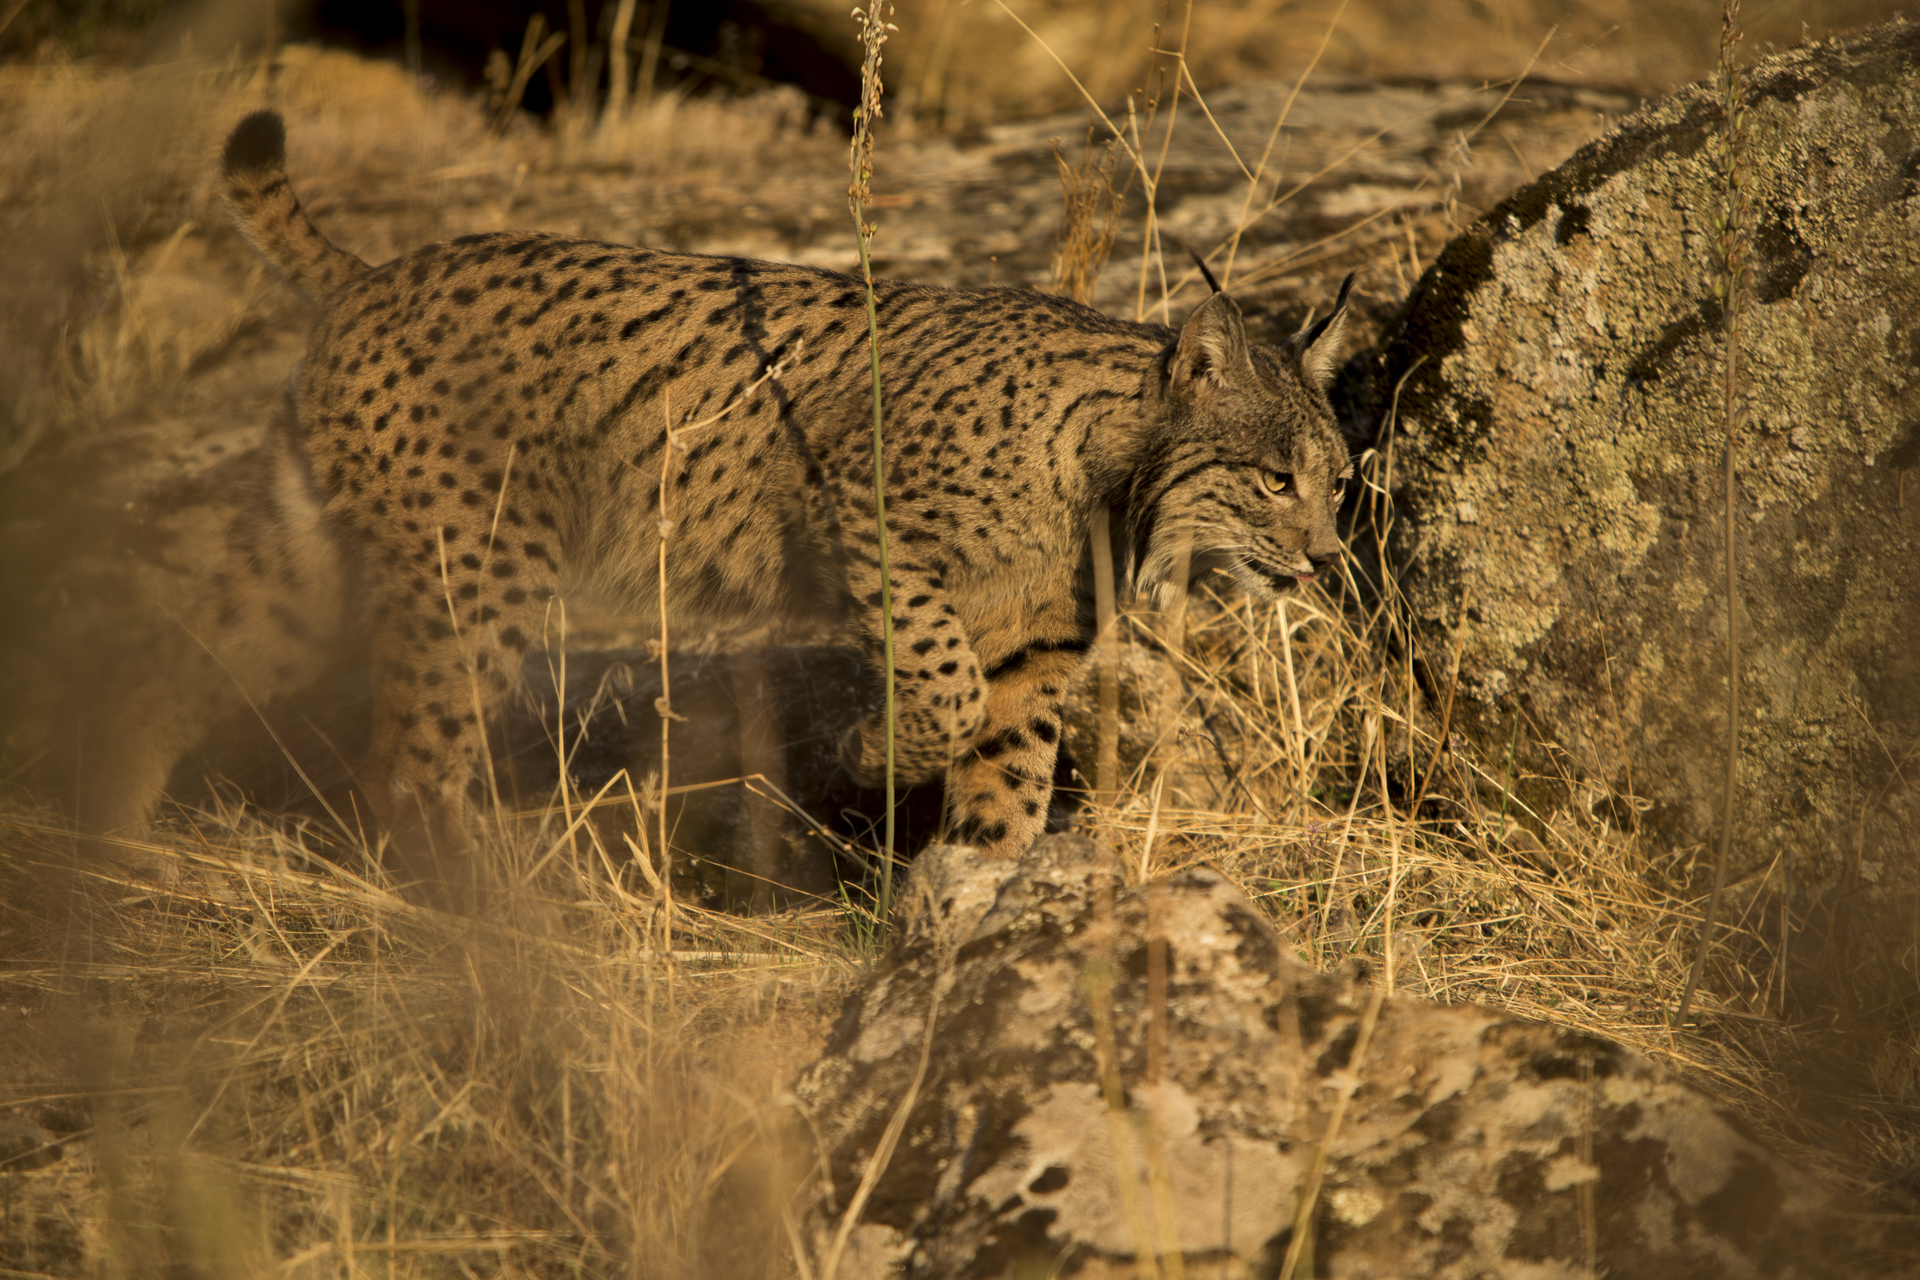 Dawn and dusk provide the best opportunities to spot these cats as they hunt out their main prey, rabbits.